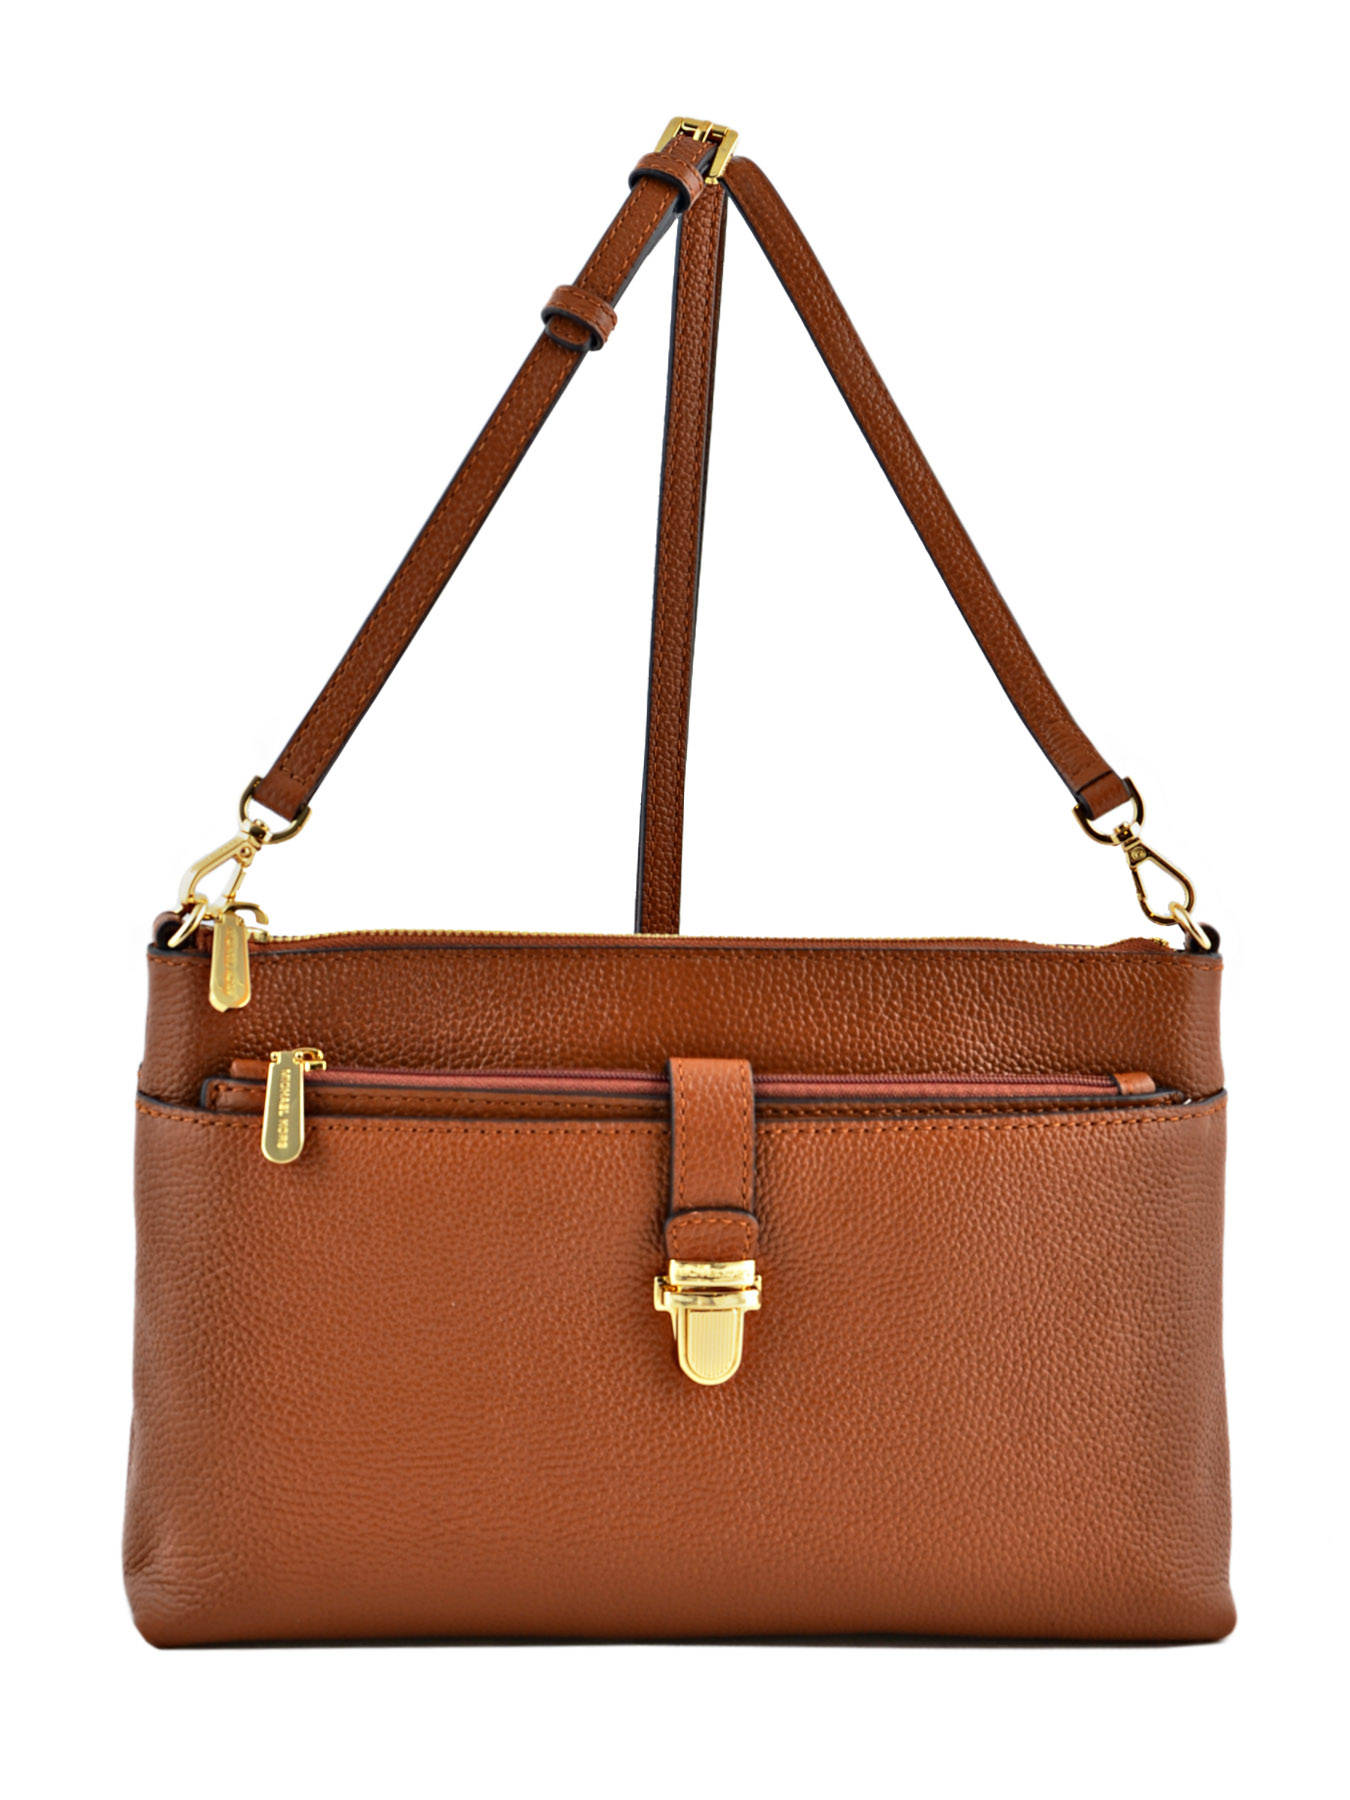 Michael Kors Outlet Online Sale Cheap Michael Kors Handbags For Men And Women,Fashion Design And Amazing Discount!Your Best Place To Purchase Michael Kors,Do Not Hesitate! Michael Kors Outlet Online Extra Save 10% At Checkout + Free Shipping Over $